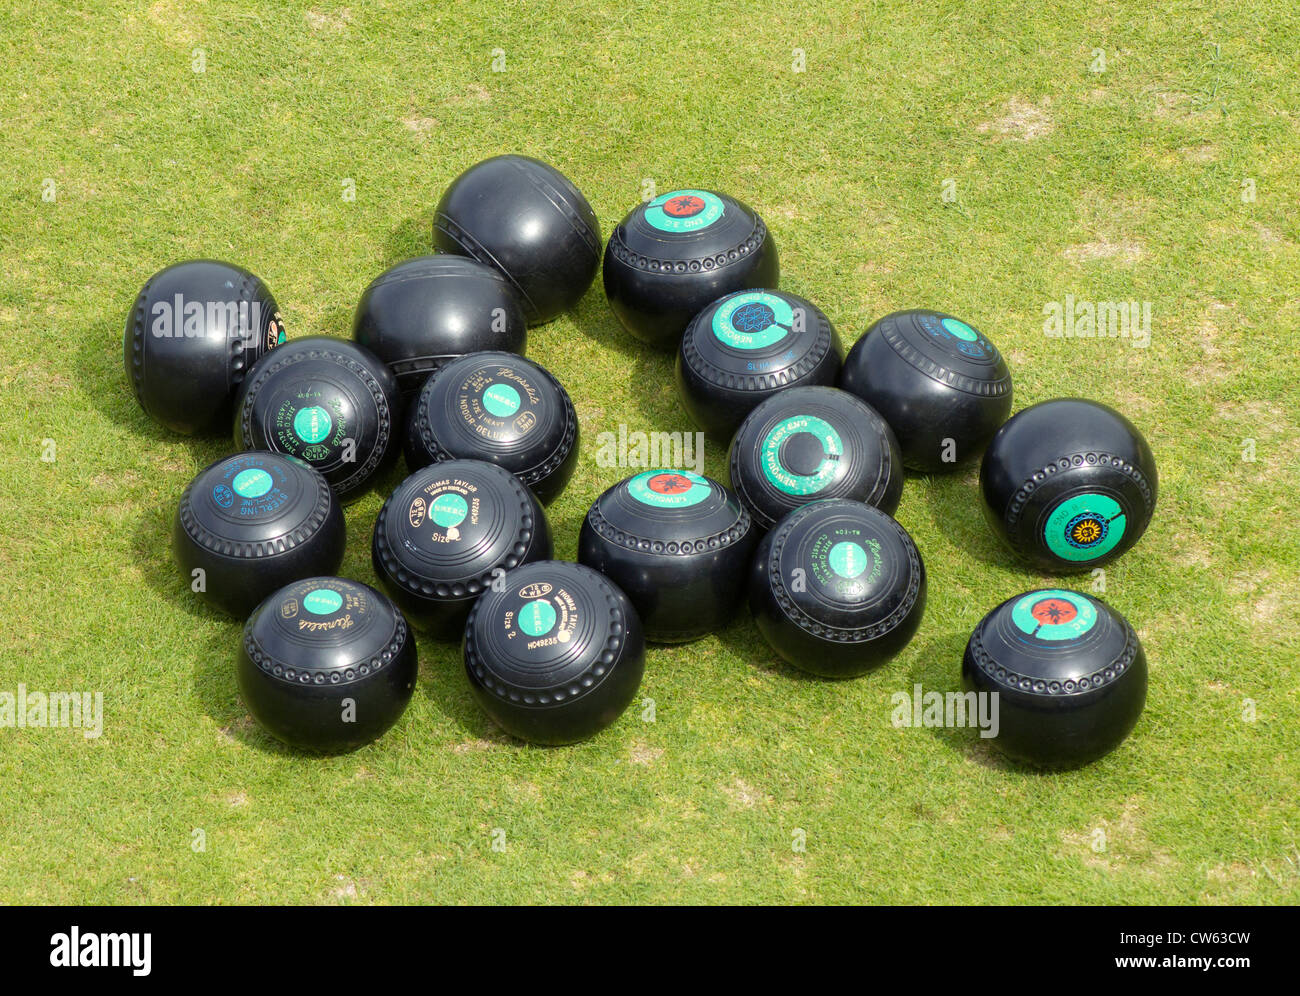 Lots of lawn bowls woods close up. - Stock Image